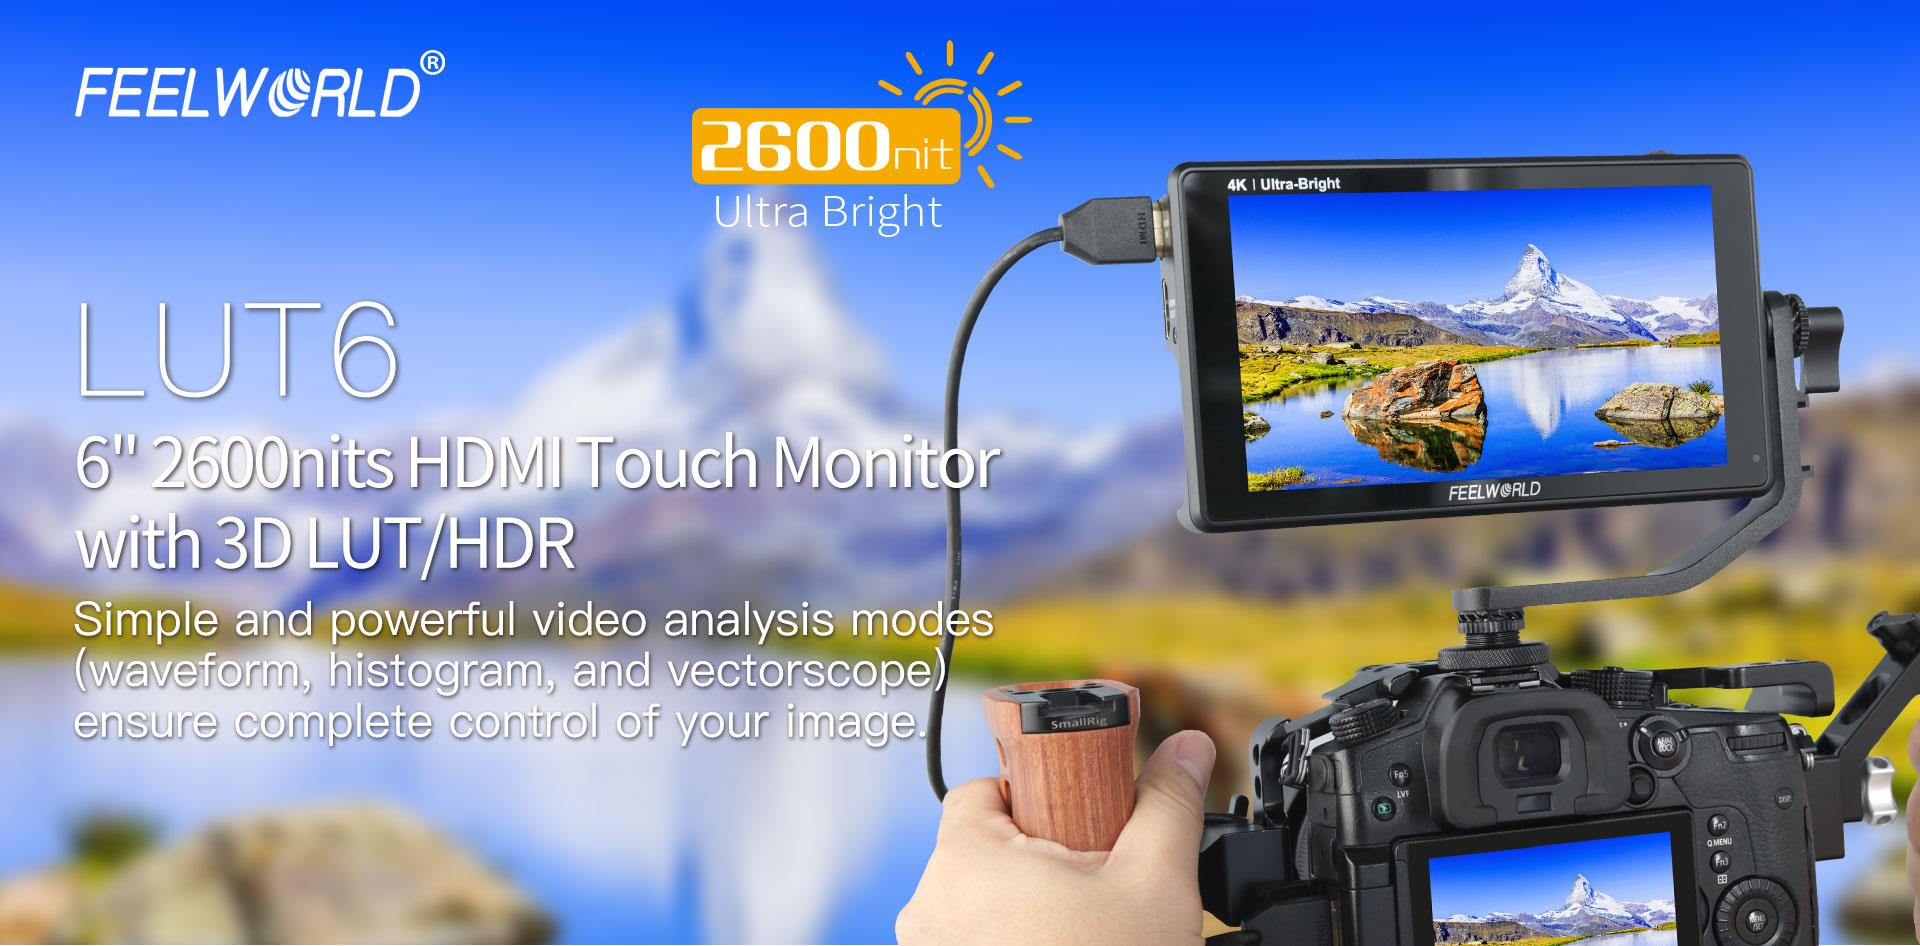 hdmi touch monitor